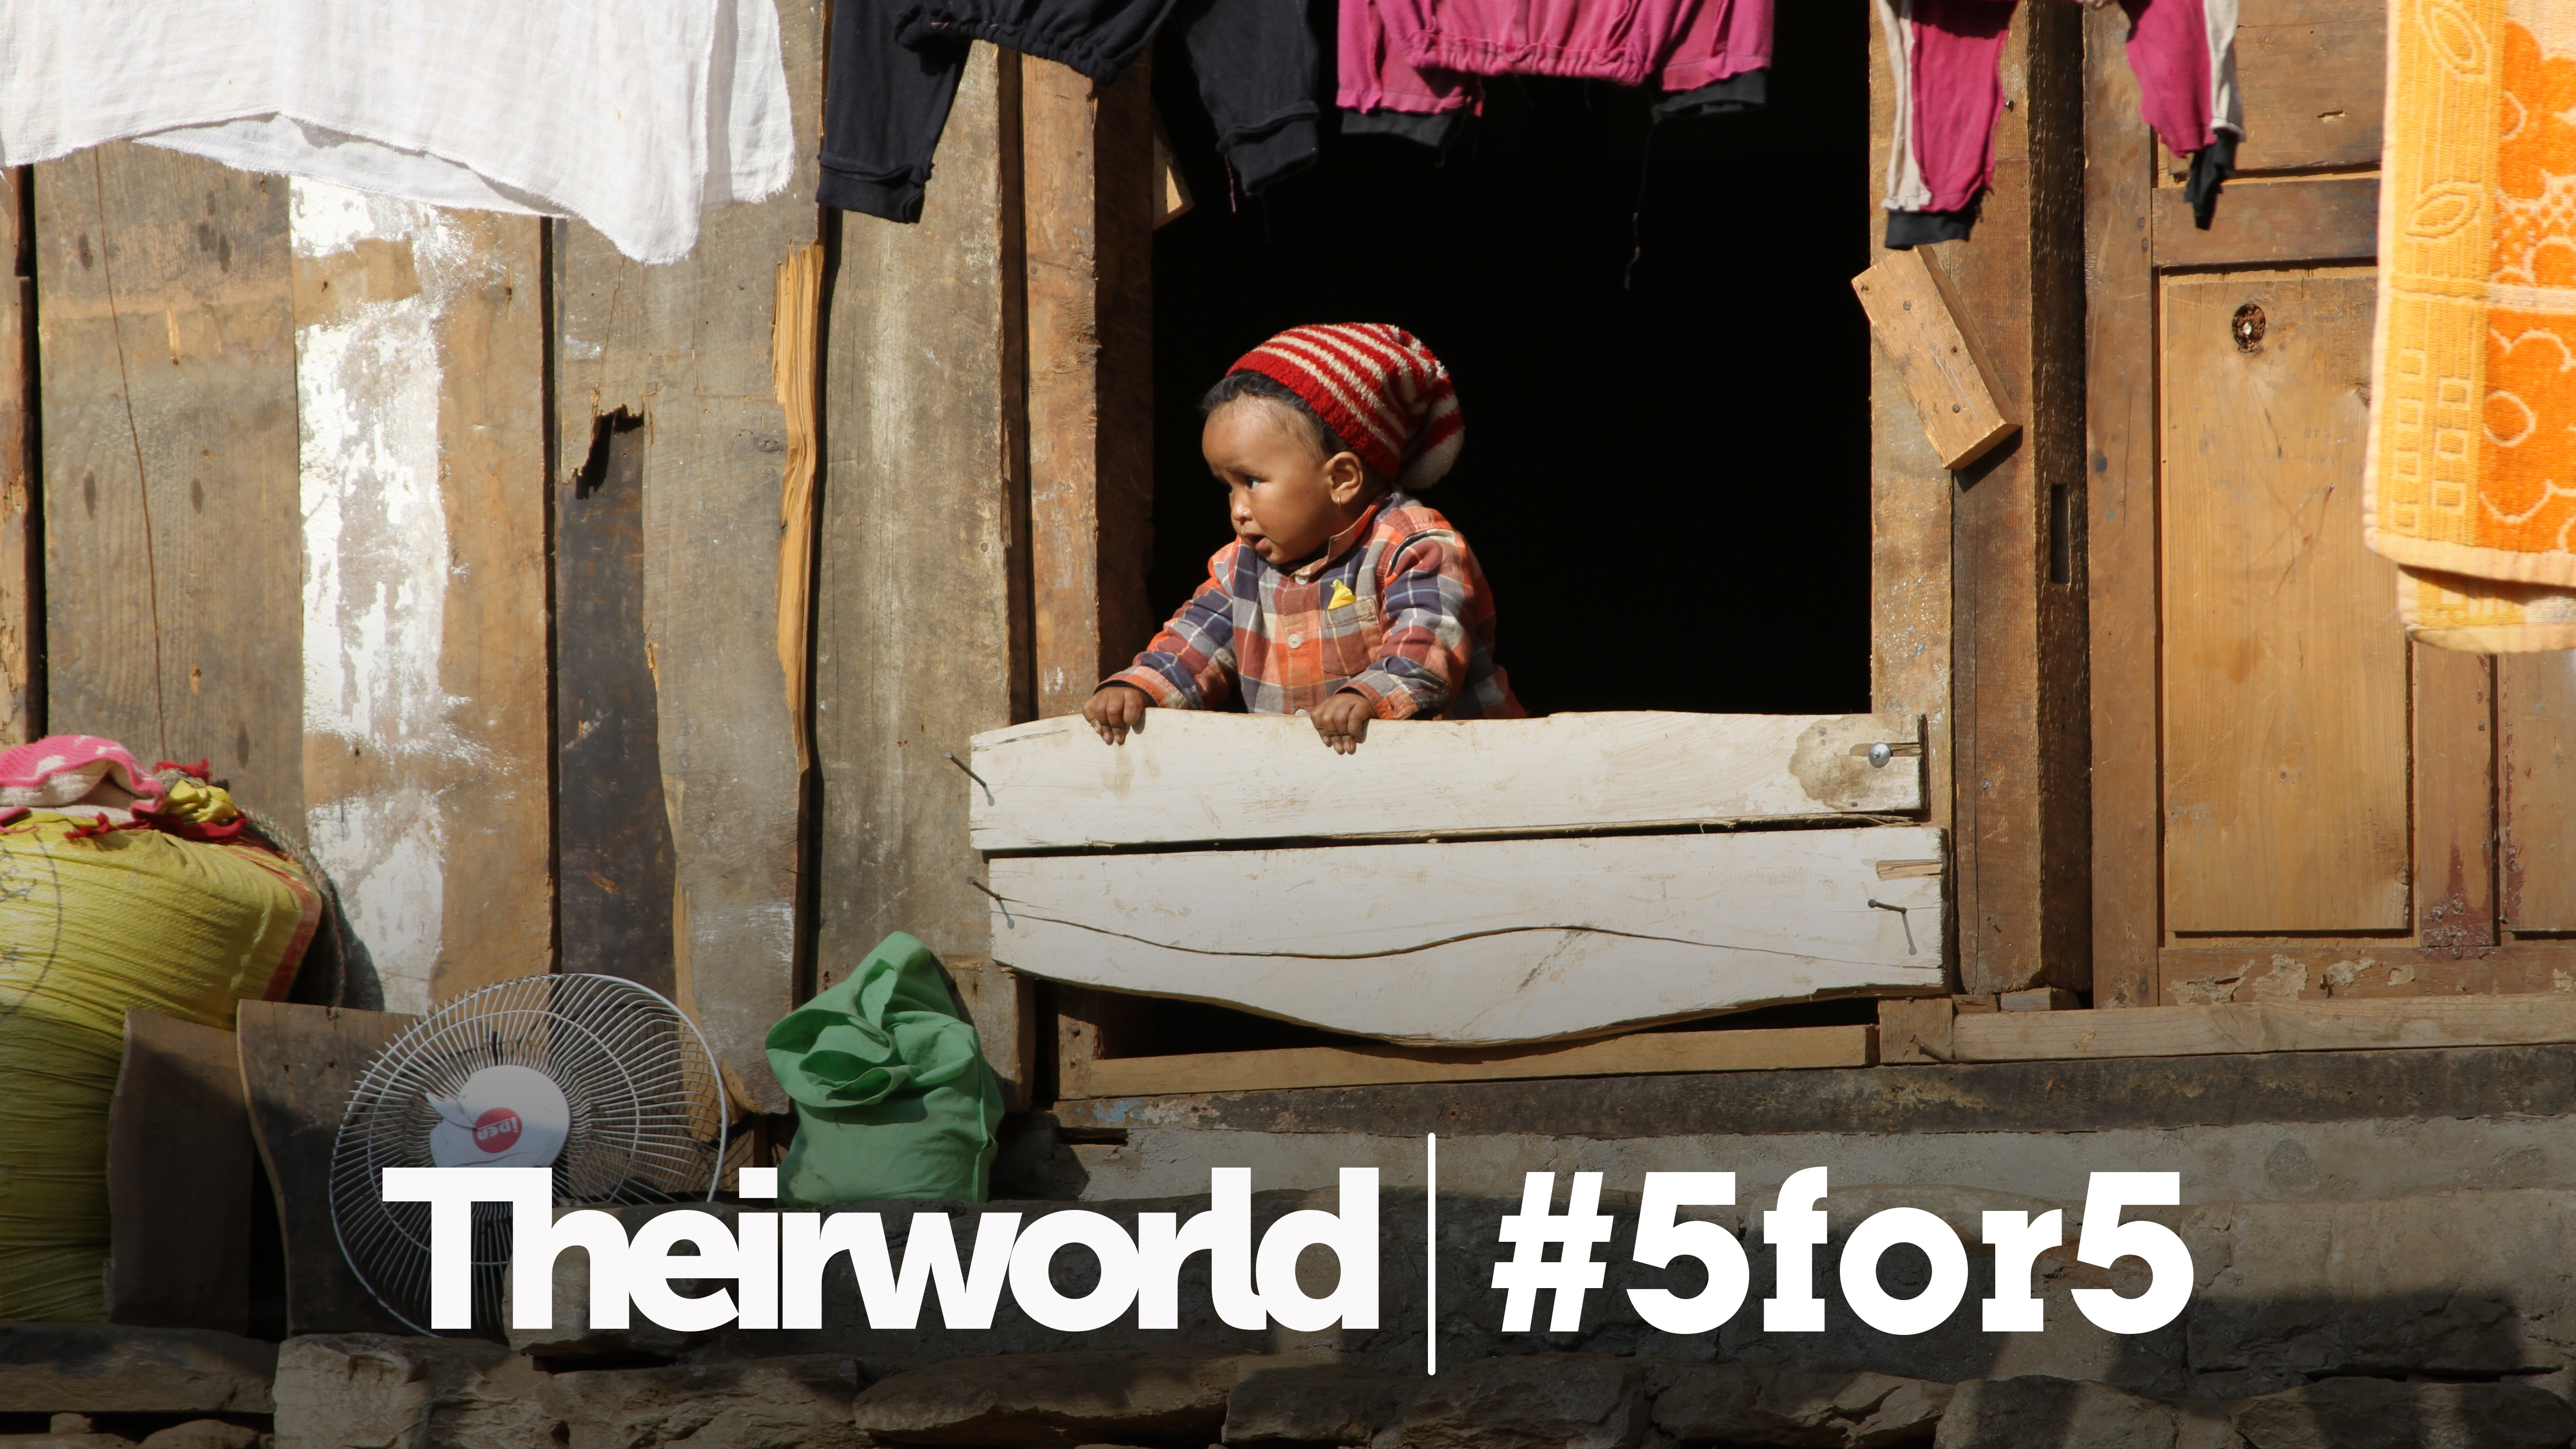 Introducing our new campaign: #5for5